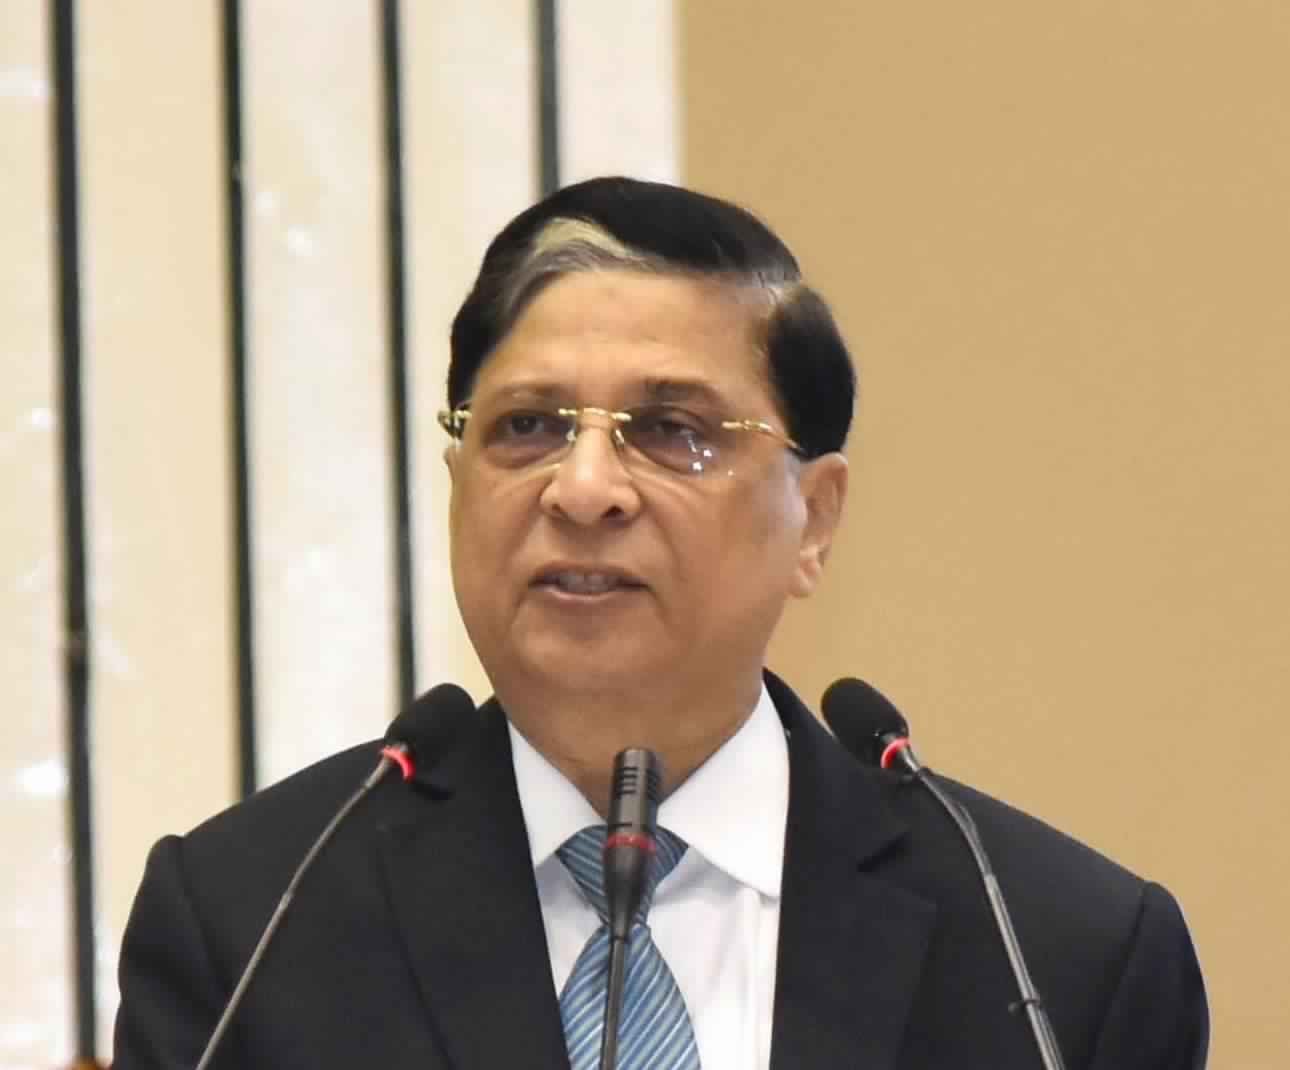 Chief Justice of India, Justice Dipak Misra